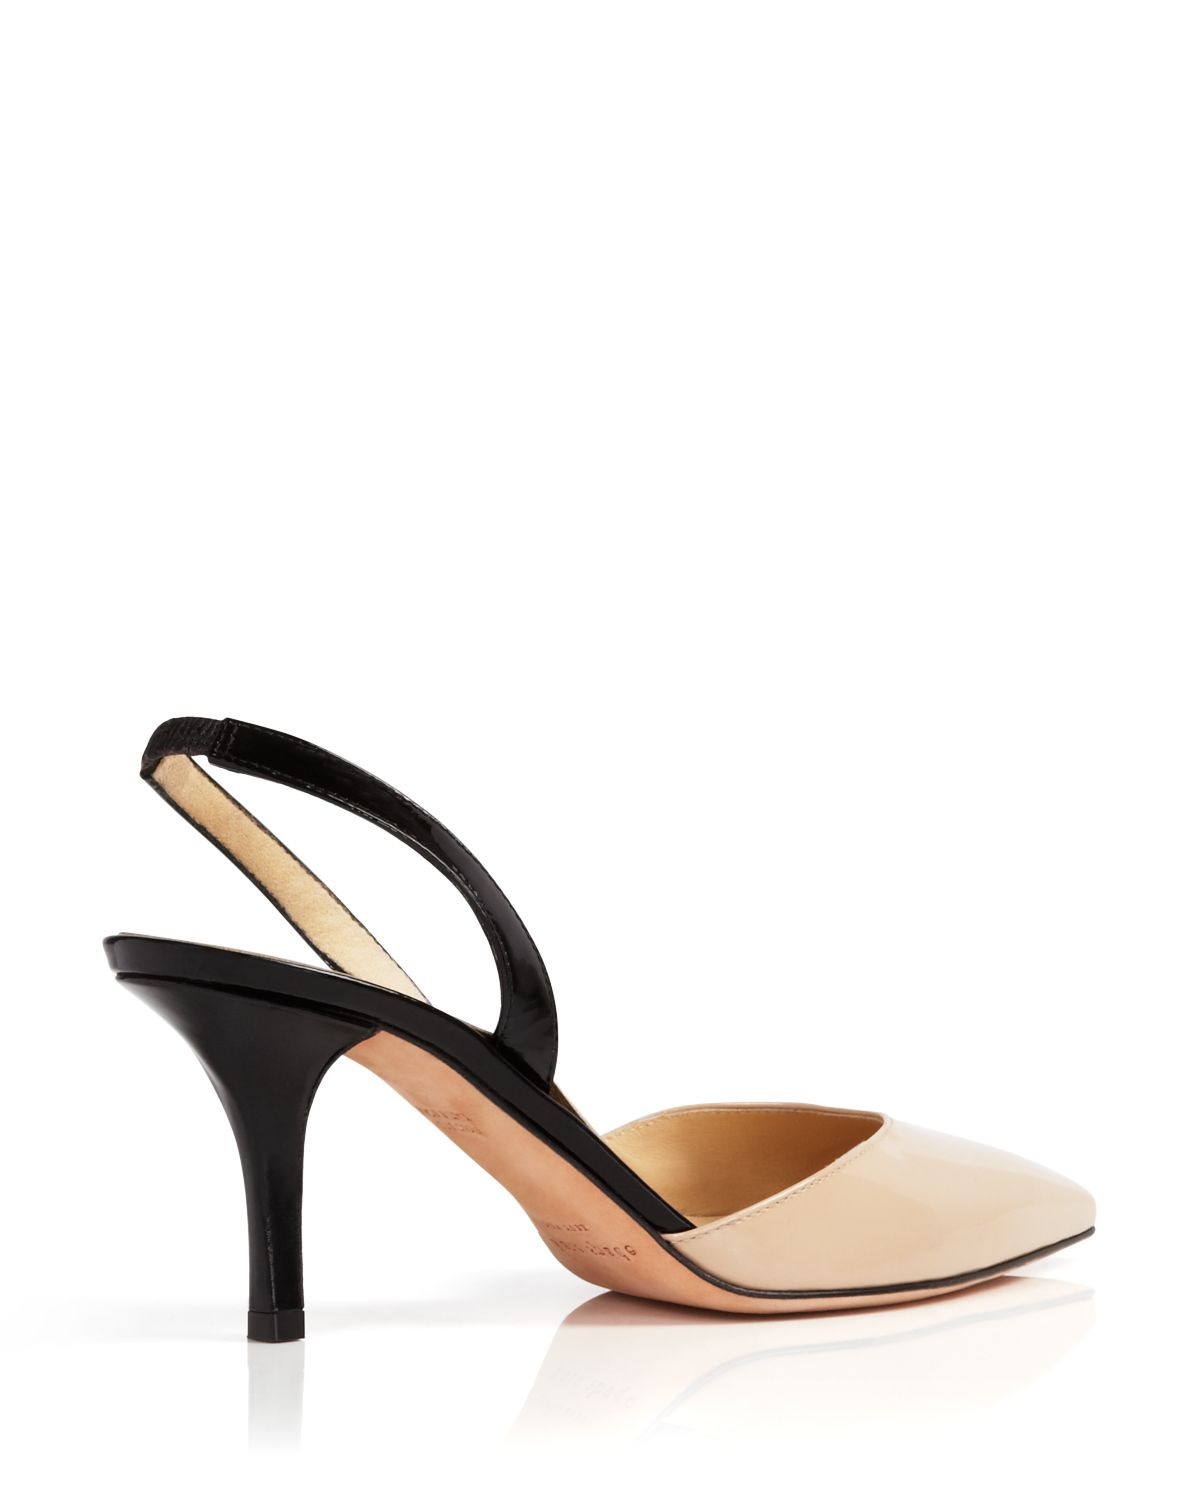 674047159019 Lyst - Kate Spade Pointed Toe Slingback Pumps - Jeanette Colorblock ...